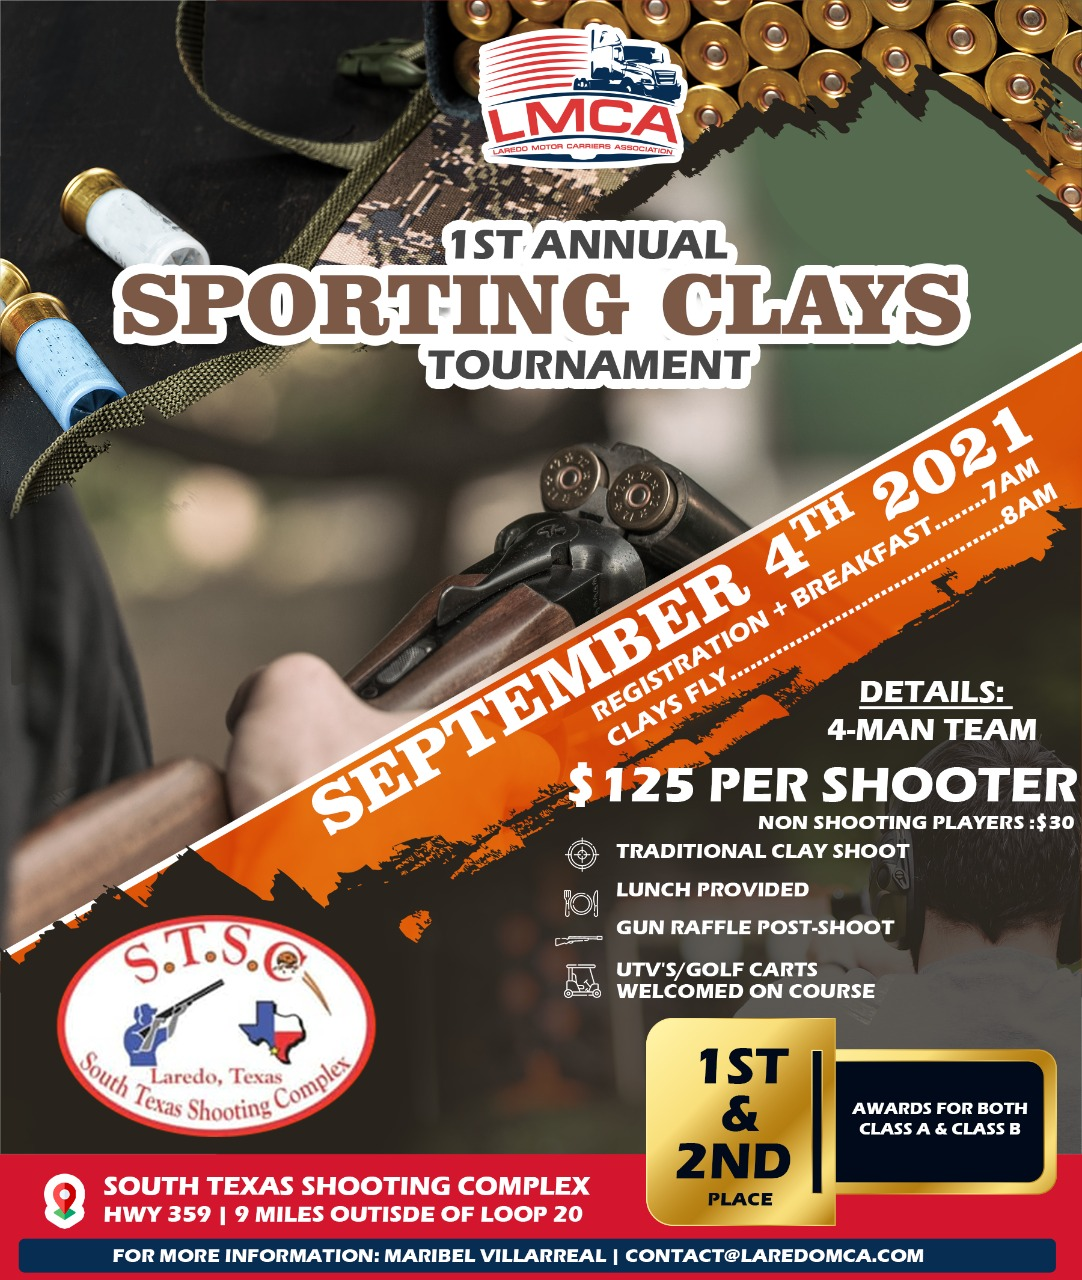 LMCA's 1st Annual Sporting Clays Tournament